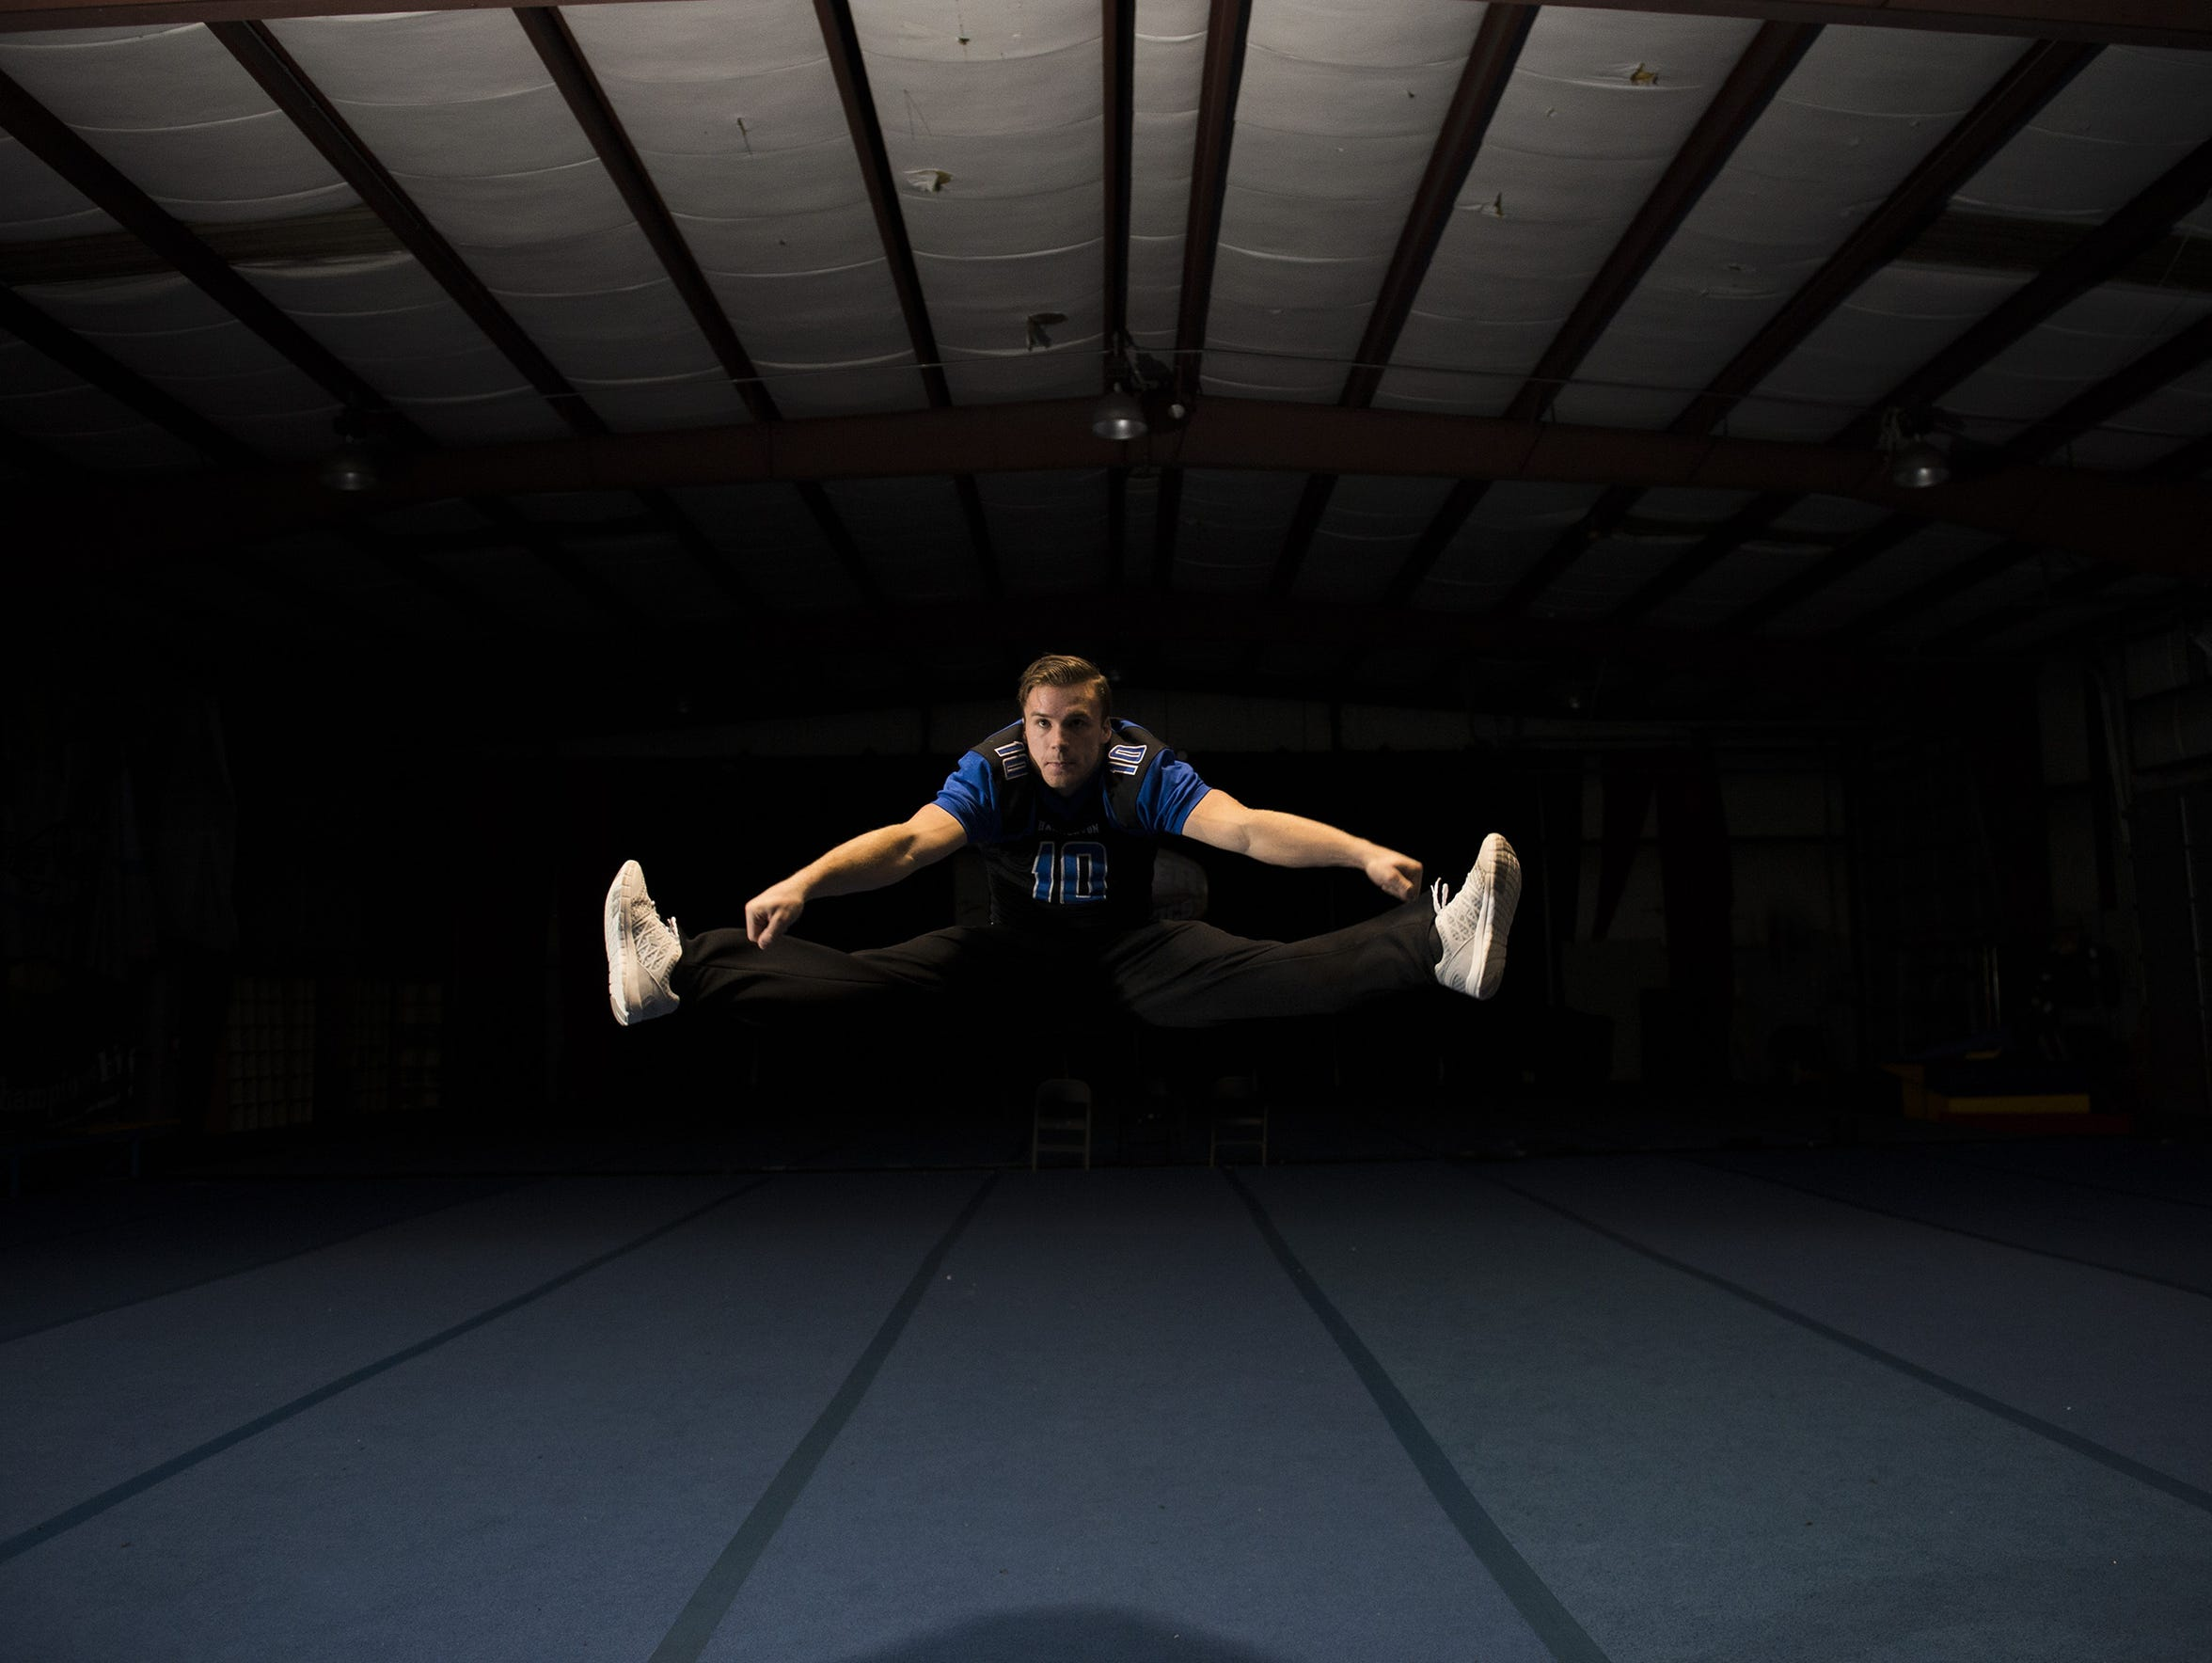 Hammonton senior Sean Ryker, 18, performs a toe-touch